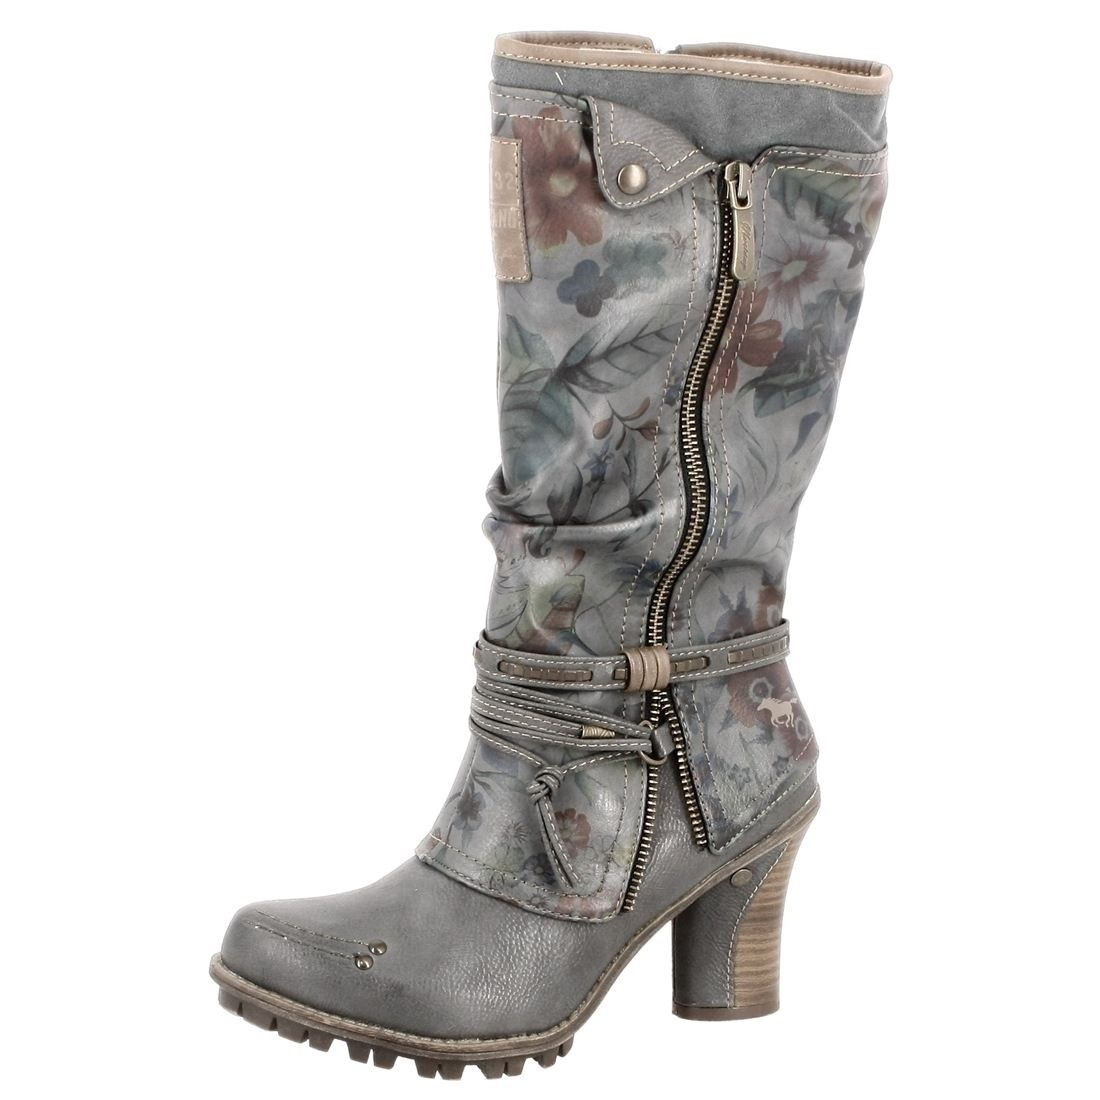 Mustang 1141610 Pinterest Inspiration Shoes Femme xwYR7qFX